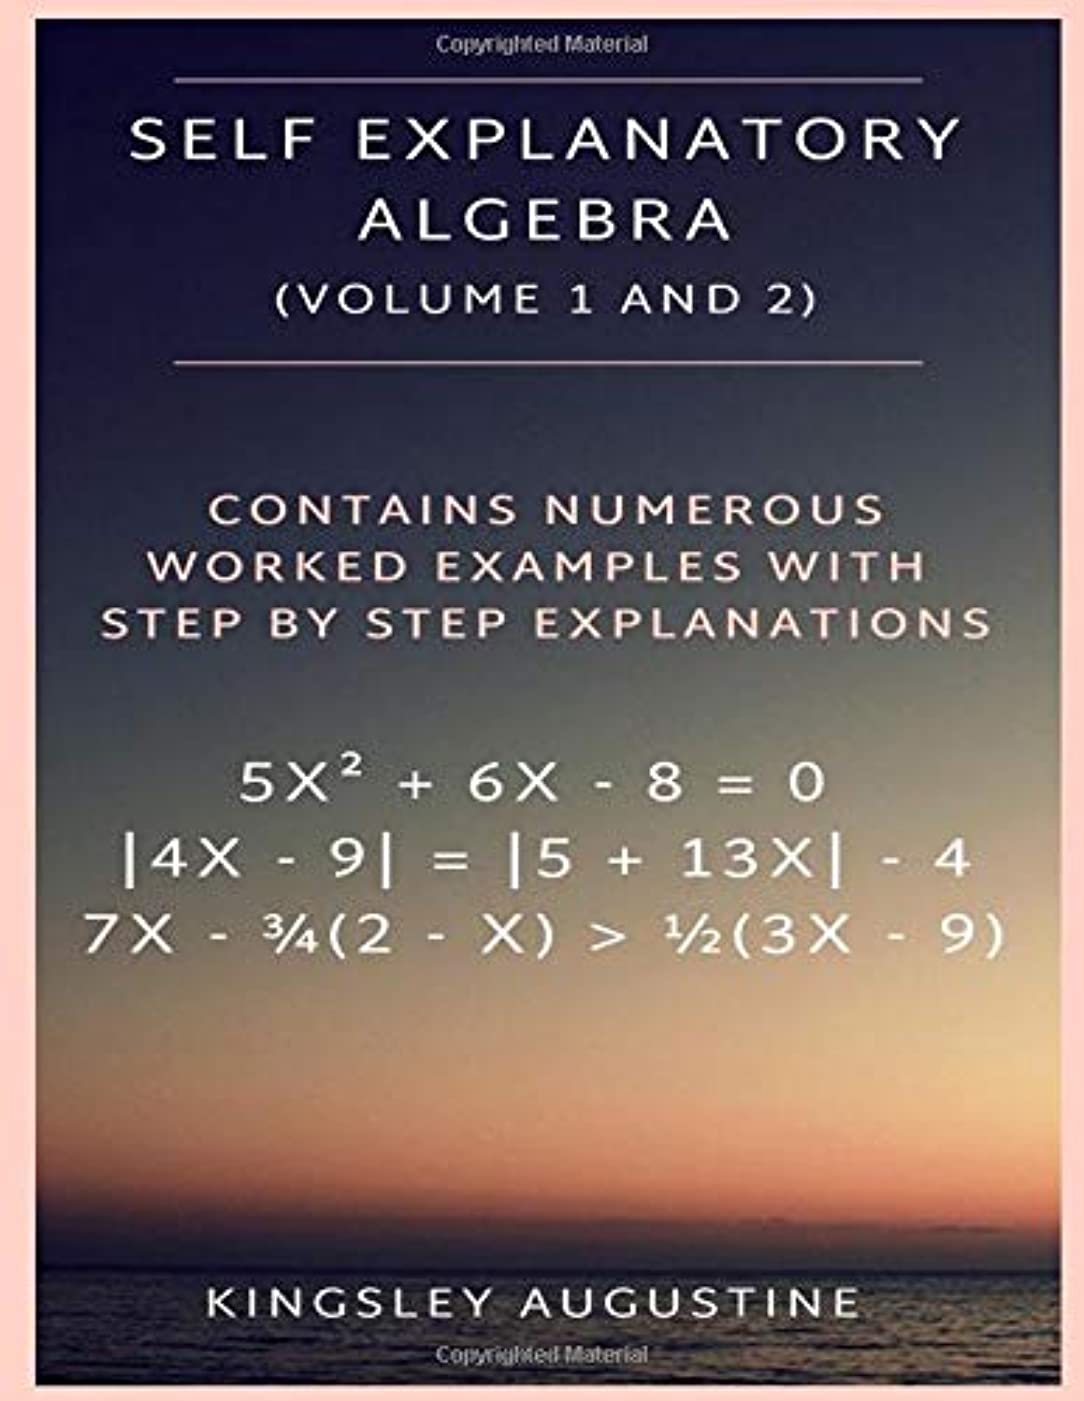 絶滅した繕うバラエティSelf Explanatory Algebra (Volume 1 and 2): Contains Numerous Worked Examples with Step by Step Explanations